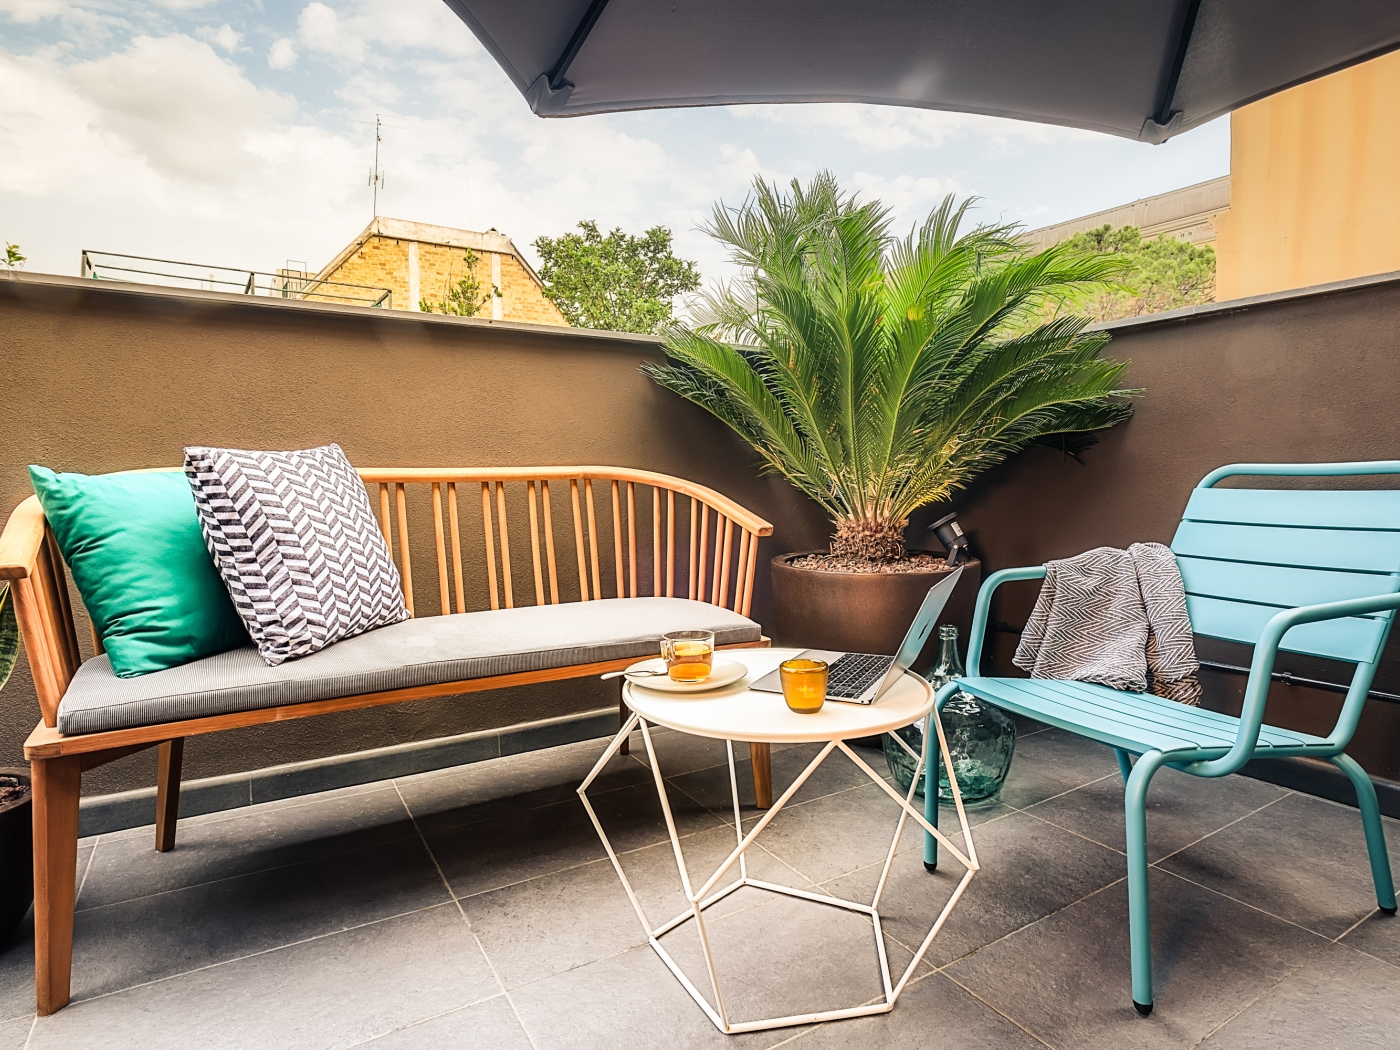 Spacious and cossy apartment for monthly rentals - My Space Barcelona Apartments